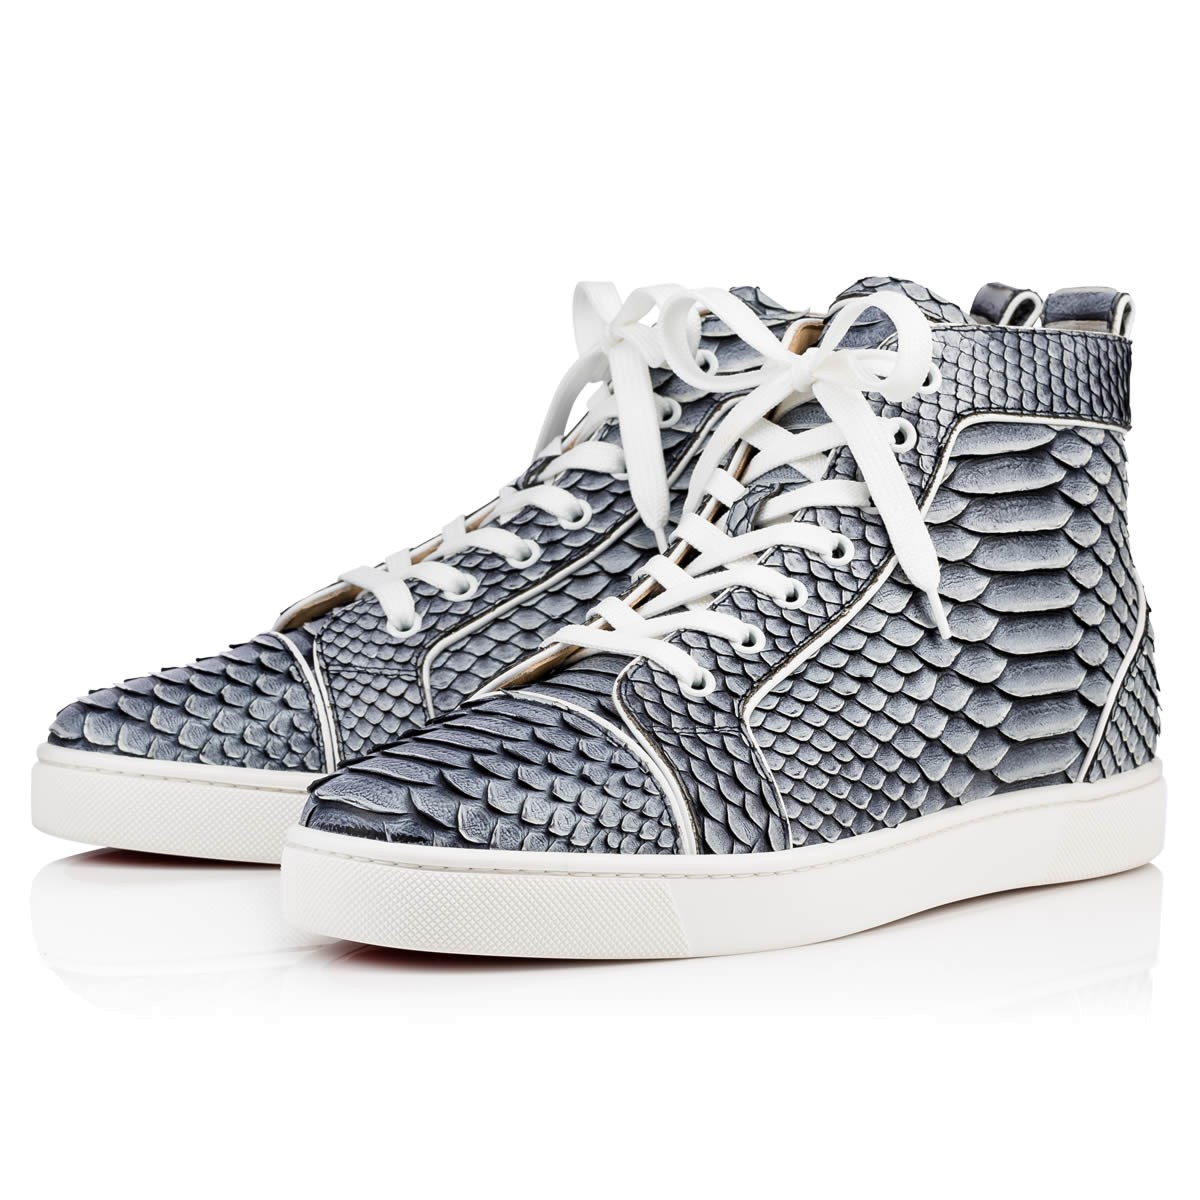 christian louboutin mens python shoes